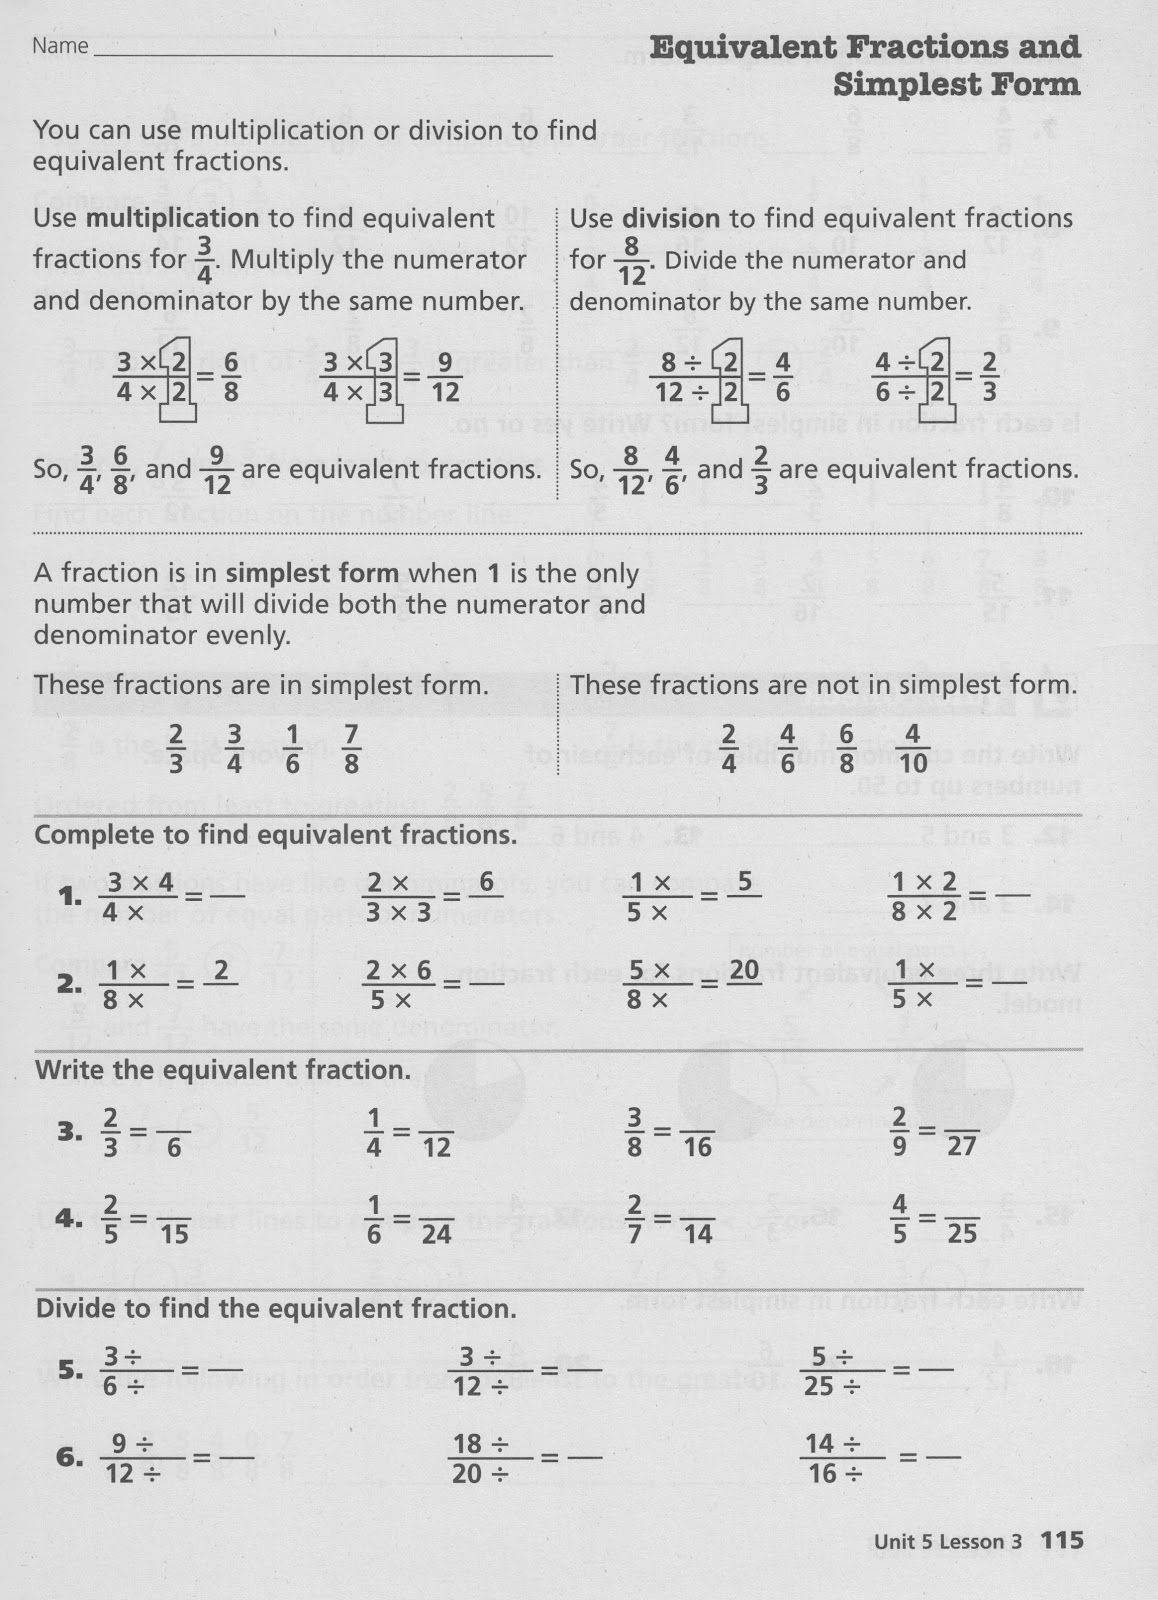 Homework 2012-2013: February 21st - Equivalent Fractions and ...